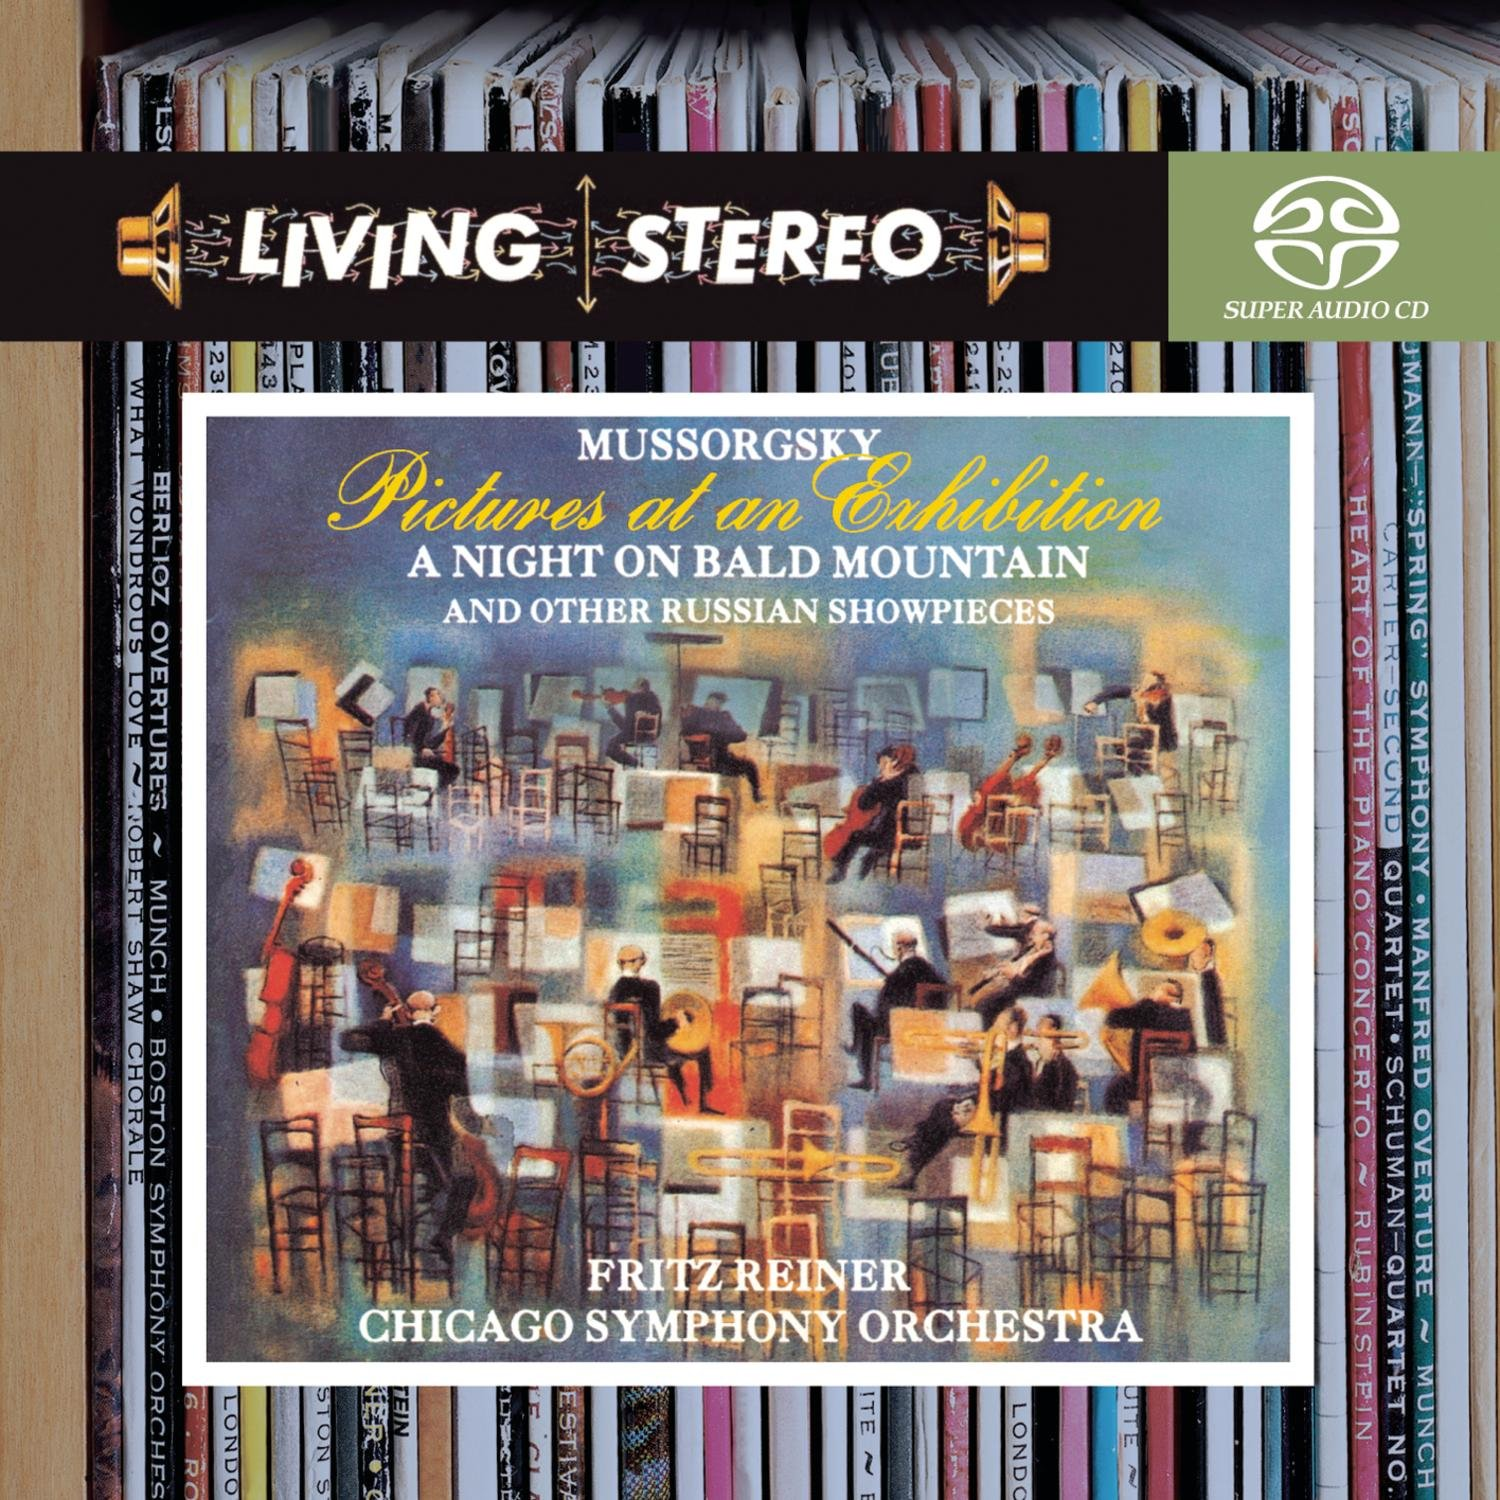 Max 82% OFF Mussorgsky: Pictures at an Exhibition All stores are sold Mountain on Bald Night A